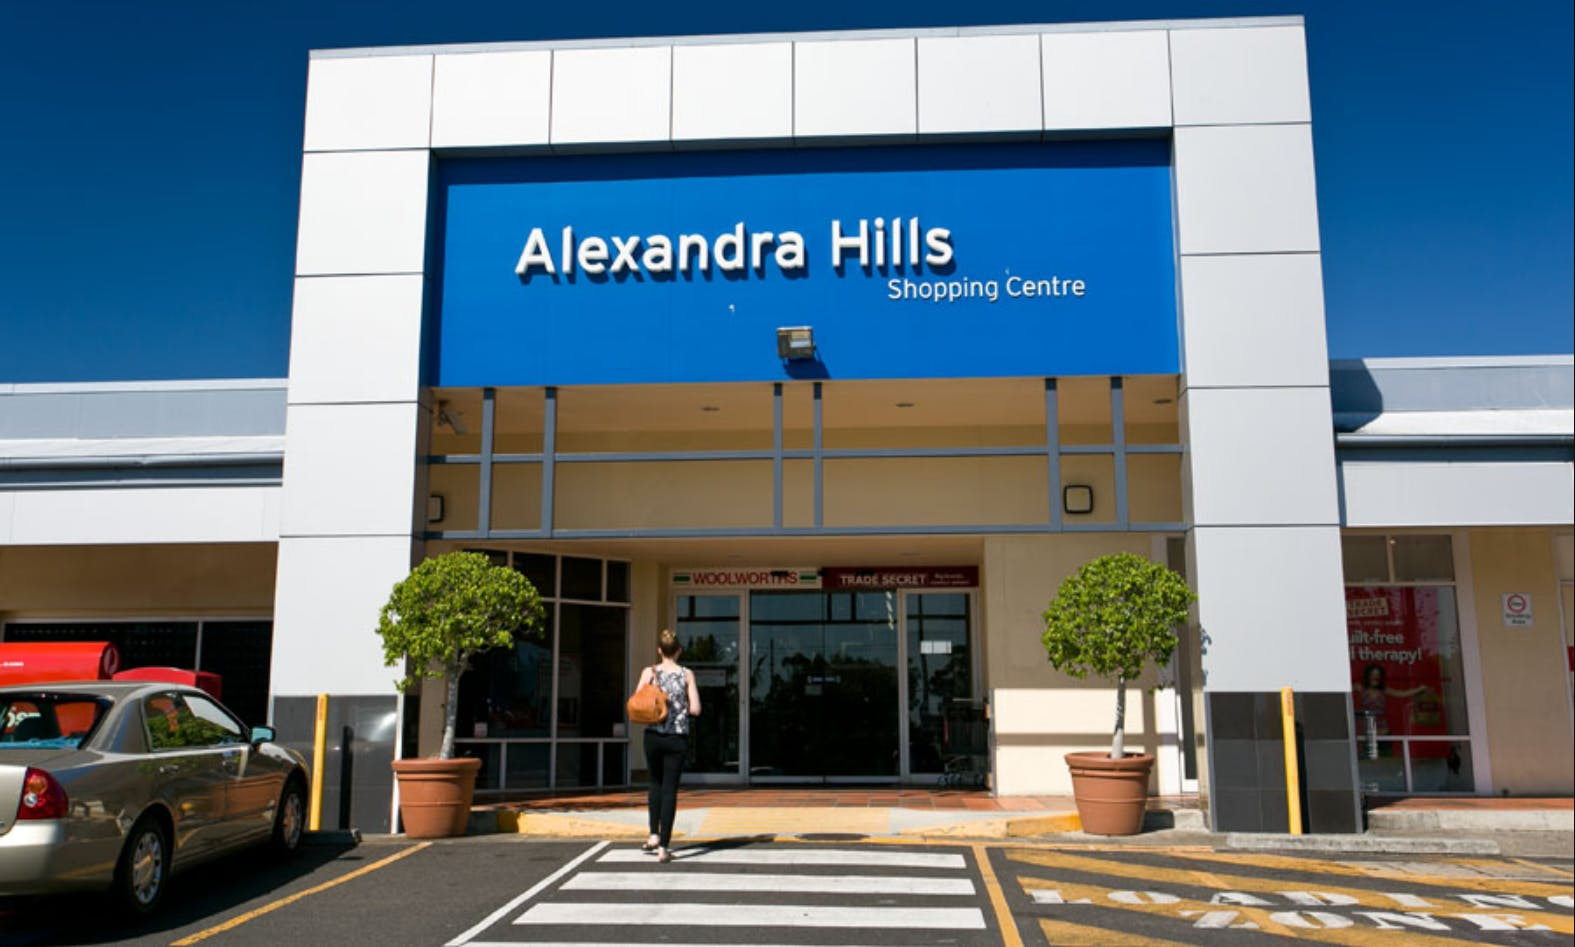 Serviced office at Alexandra Hills Shopping Centre, image 1